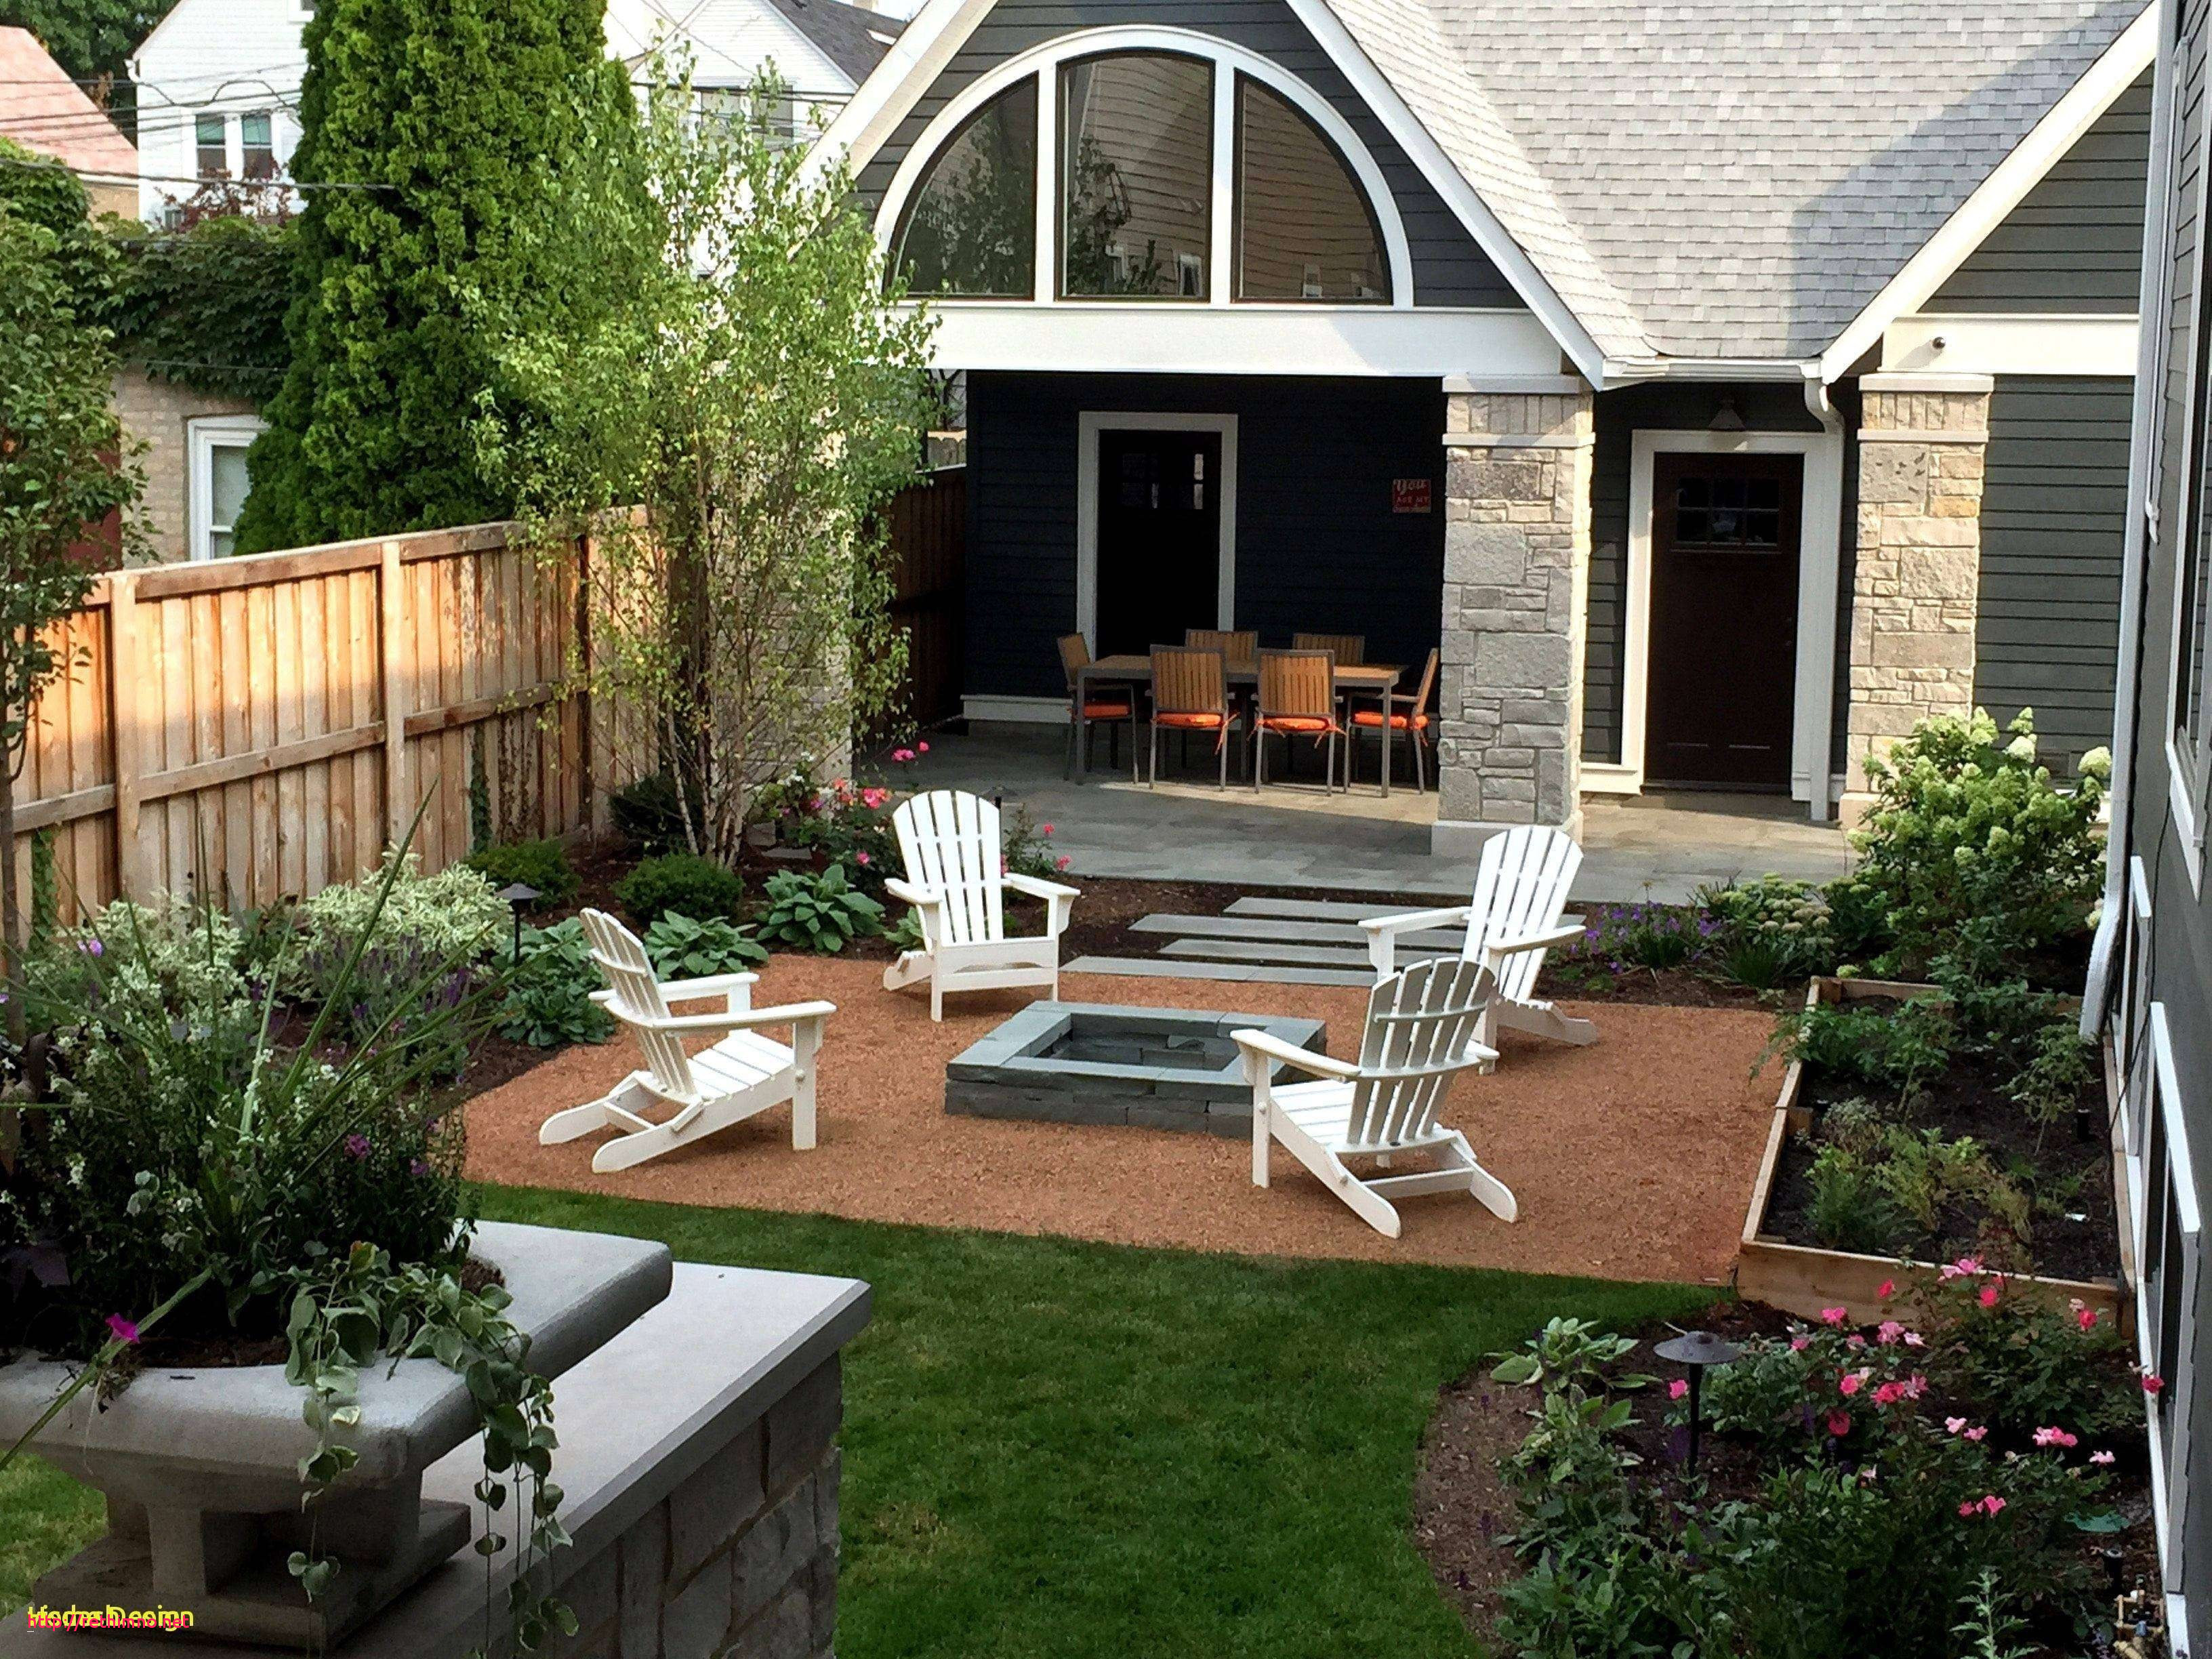 Unique Backyard Covered Patio Design Ideas Rethimno pertaining to 15 Some of the Coolest Designs of How to Improve Patio Backyard Design Ideas